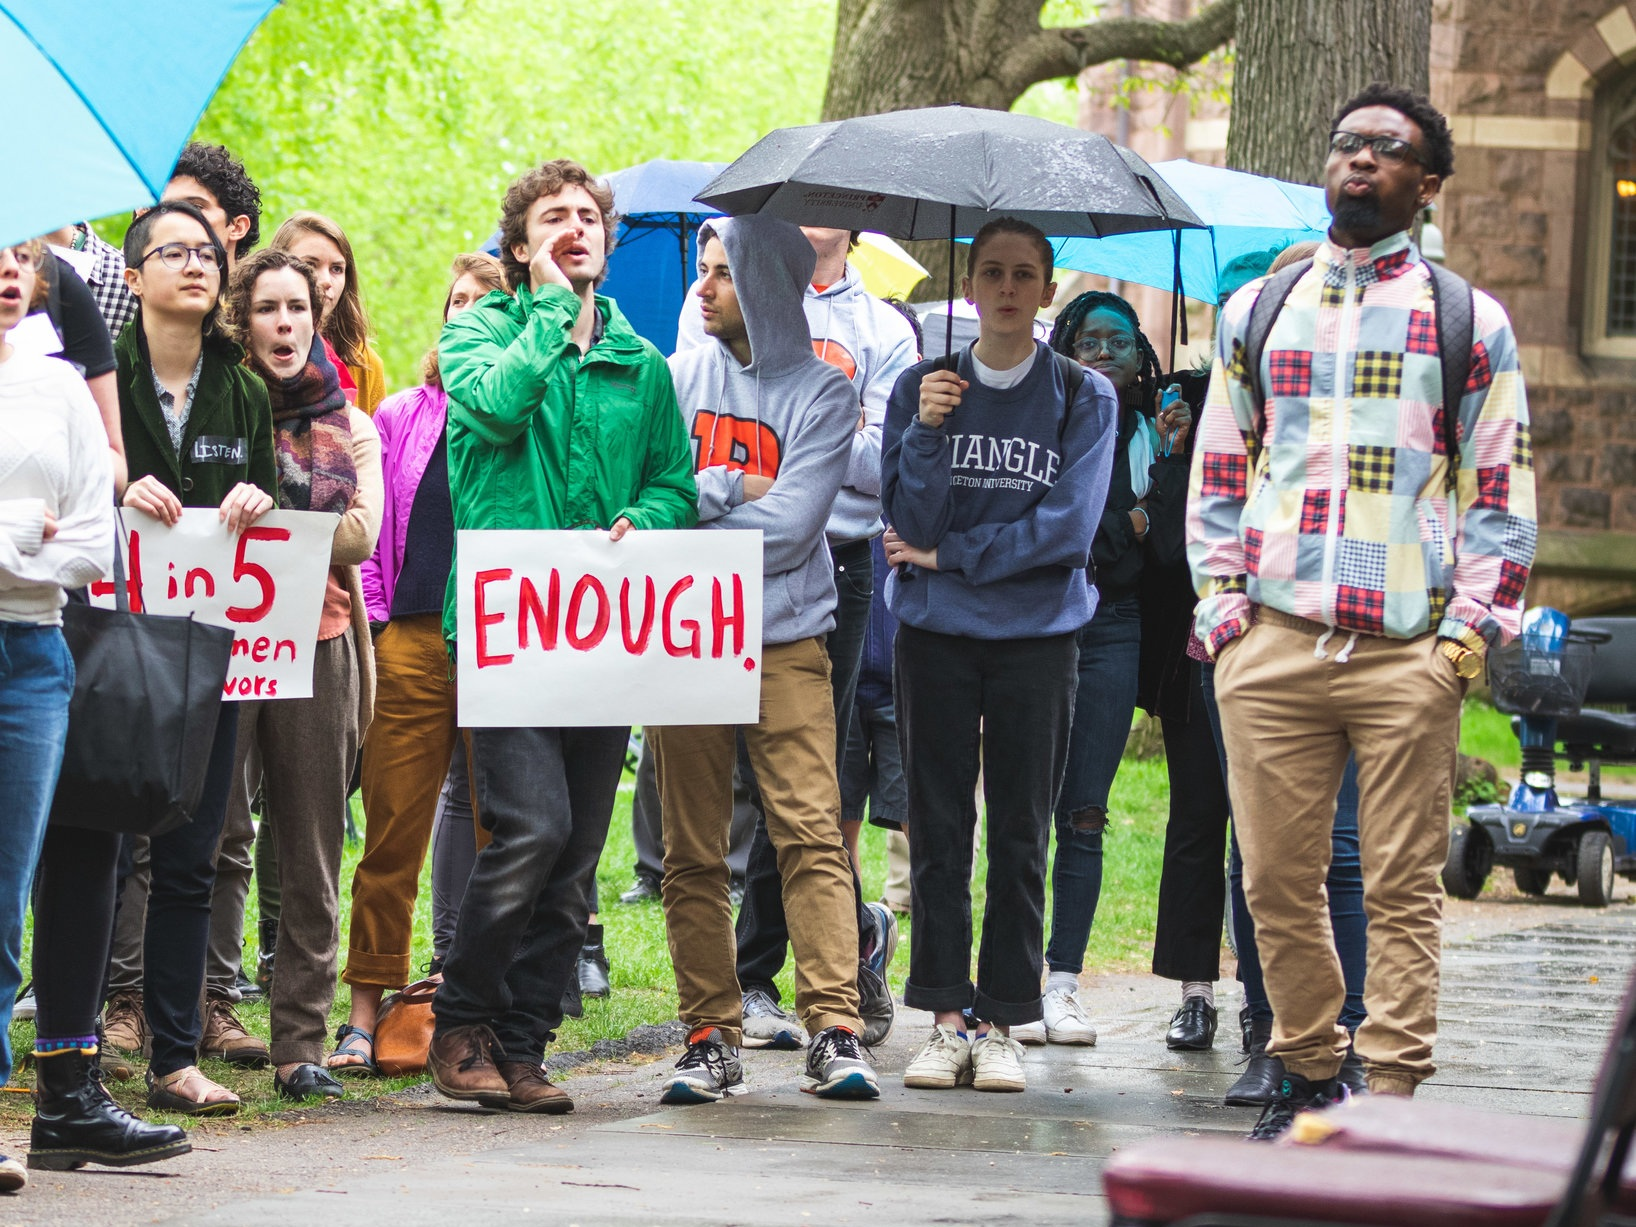 Students in light rain during the sit-in in front of Nassau Hall chanting. One person holds a sign that says 'ENOUGH.' in red lettering. Photo by Brad Spicher.